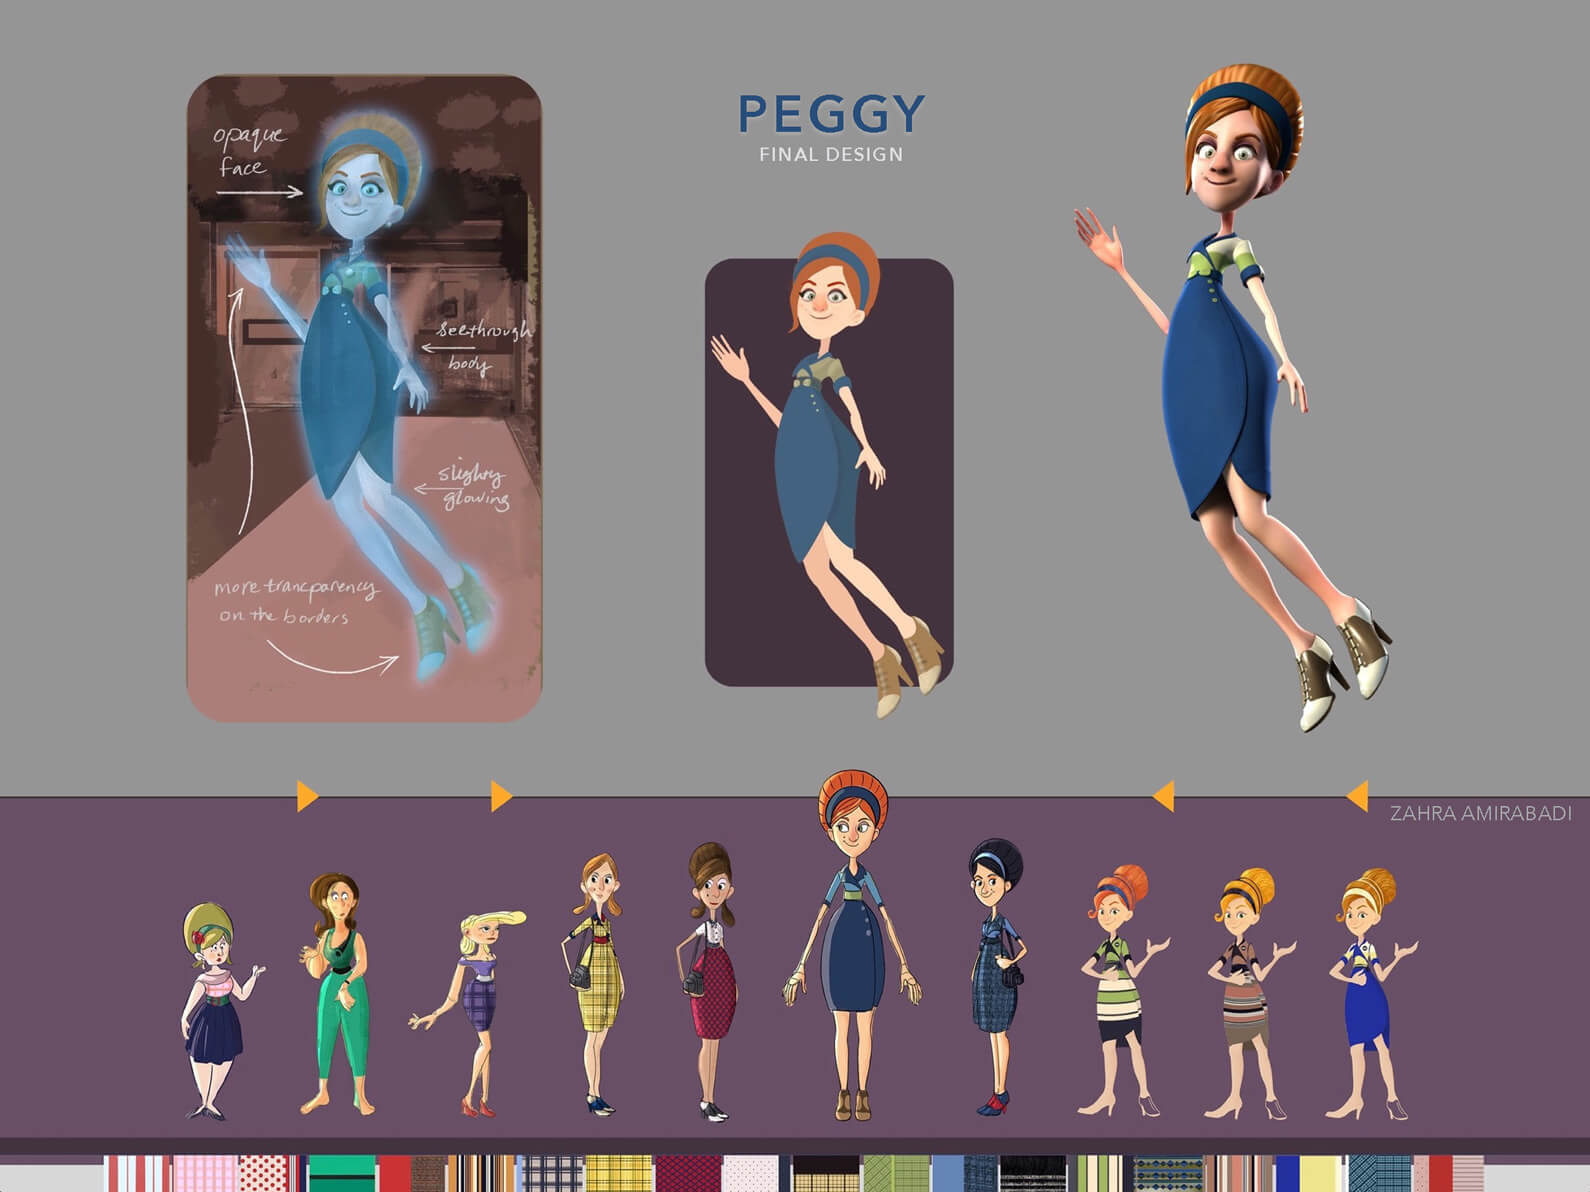 Final drawings and 3D model of Peggy in Orientation Center for the Unseen, both alive and in ghostly form